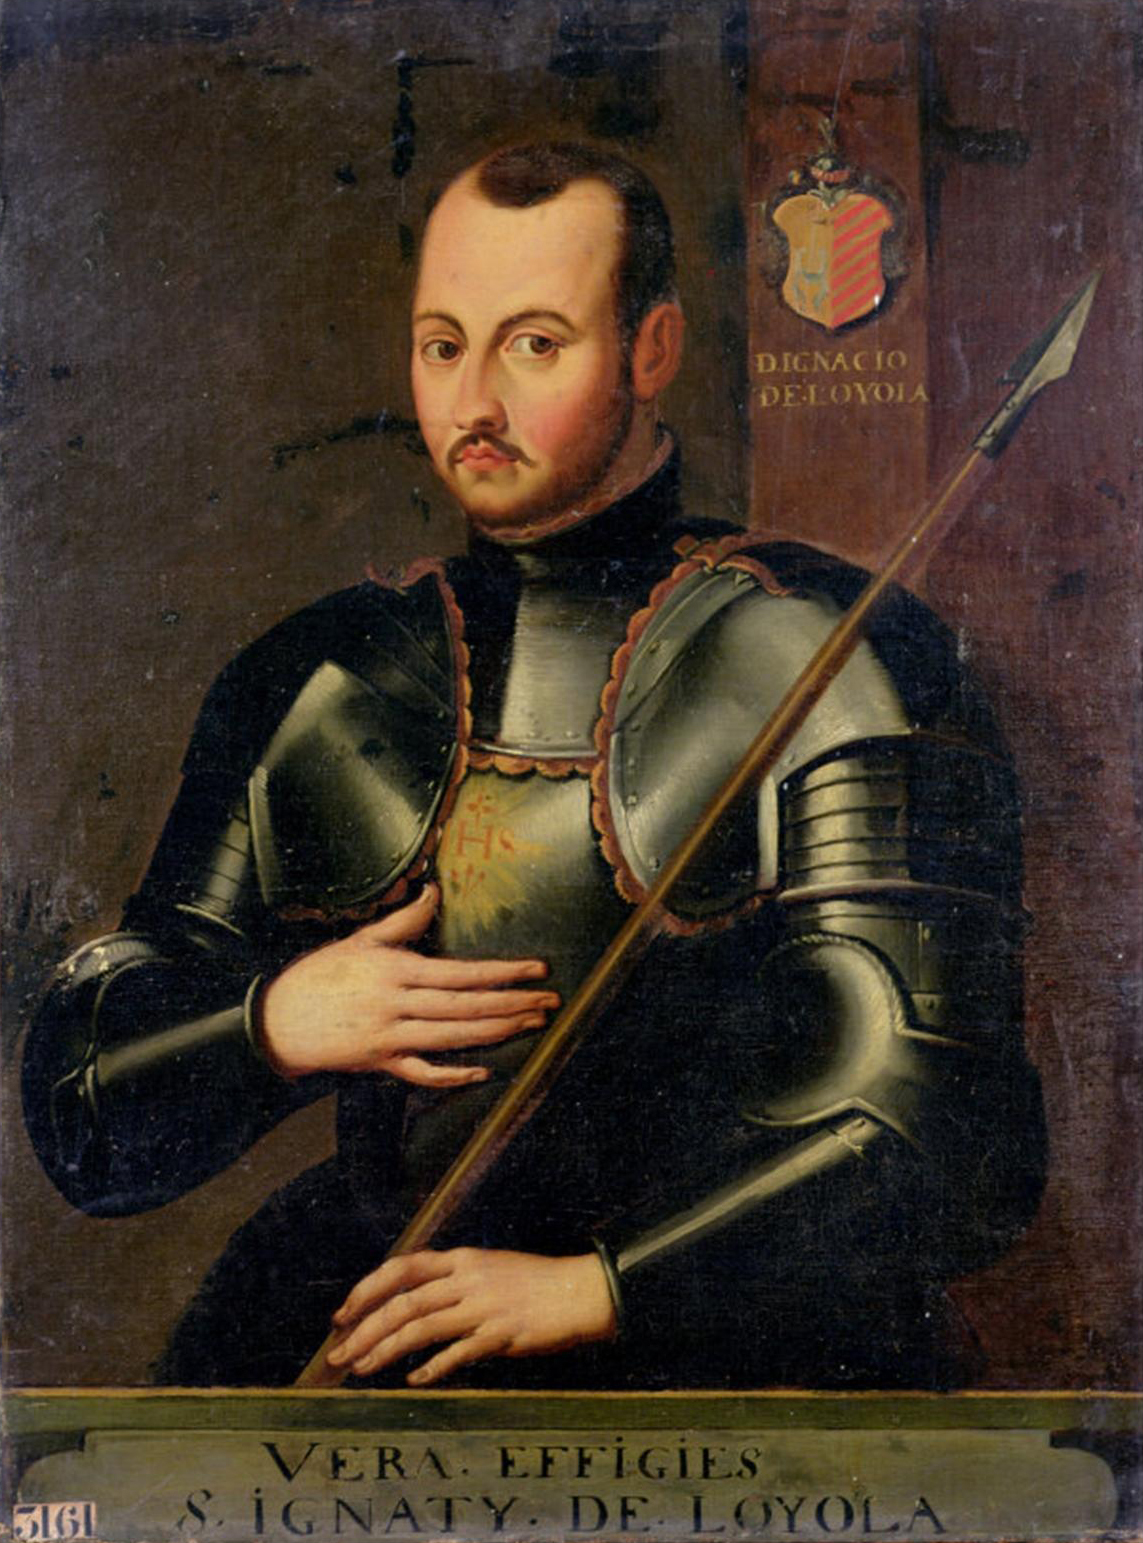 https://upload.wikimedia.org/wikipedia/commons/2/25/Ignatius_of_Loyola_(militant).jpg